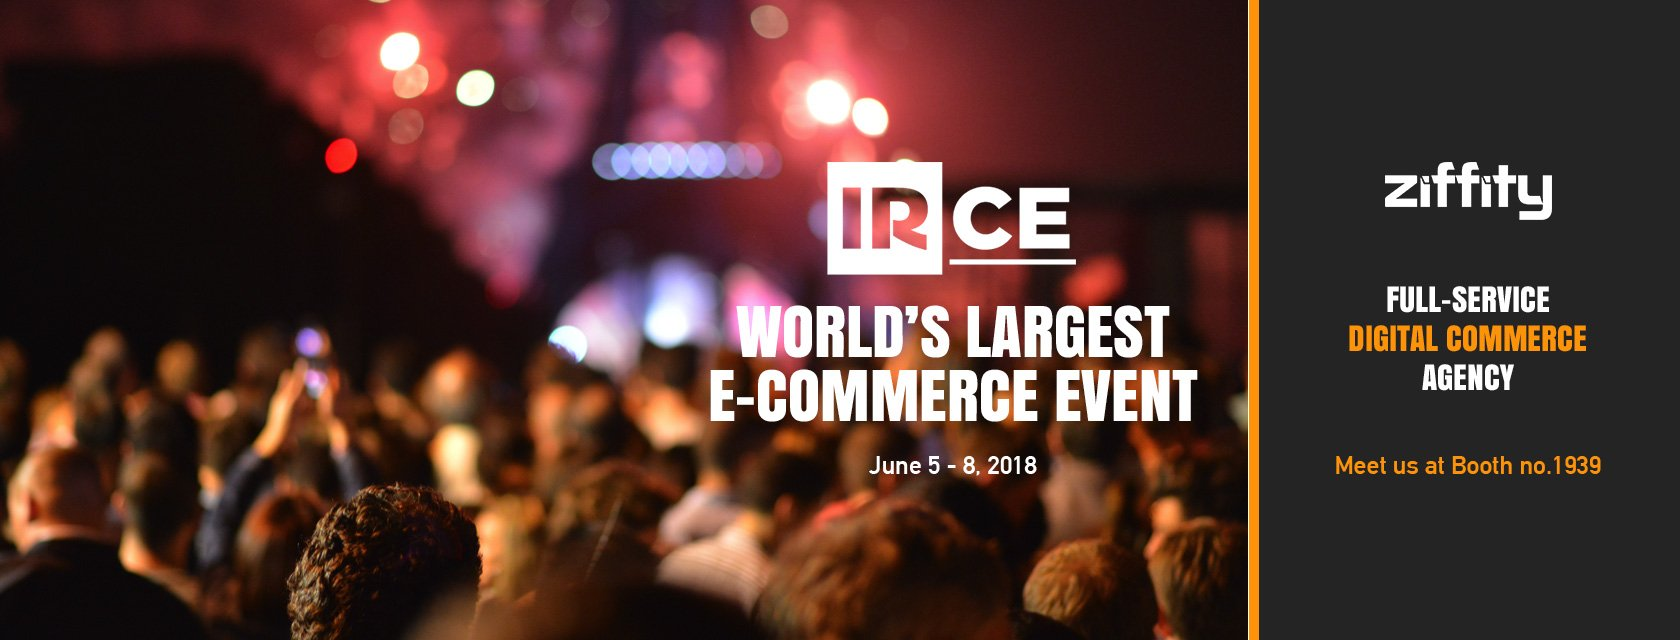 IRCE 2018 - What's new? & Who'll be there?